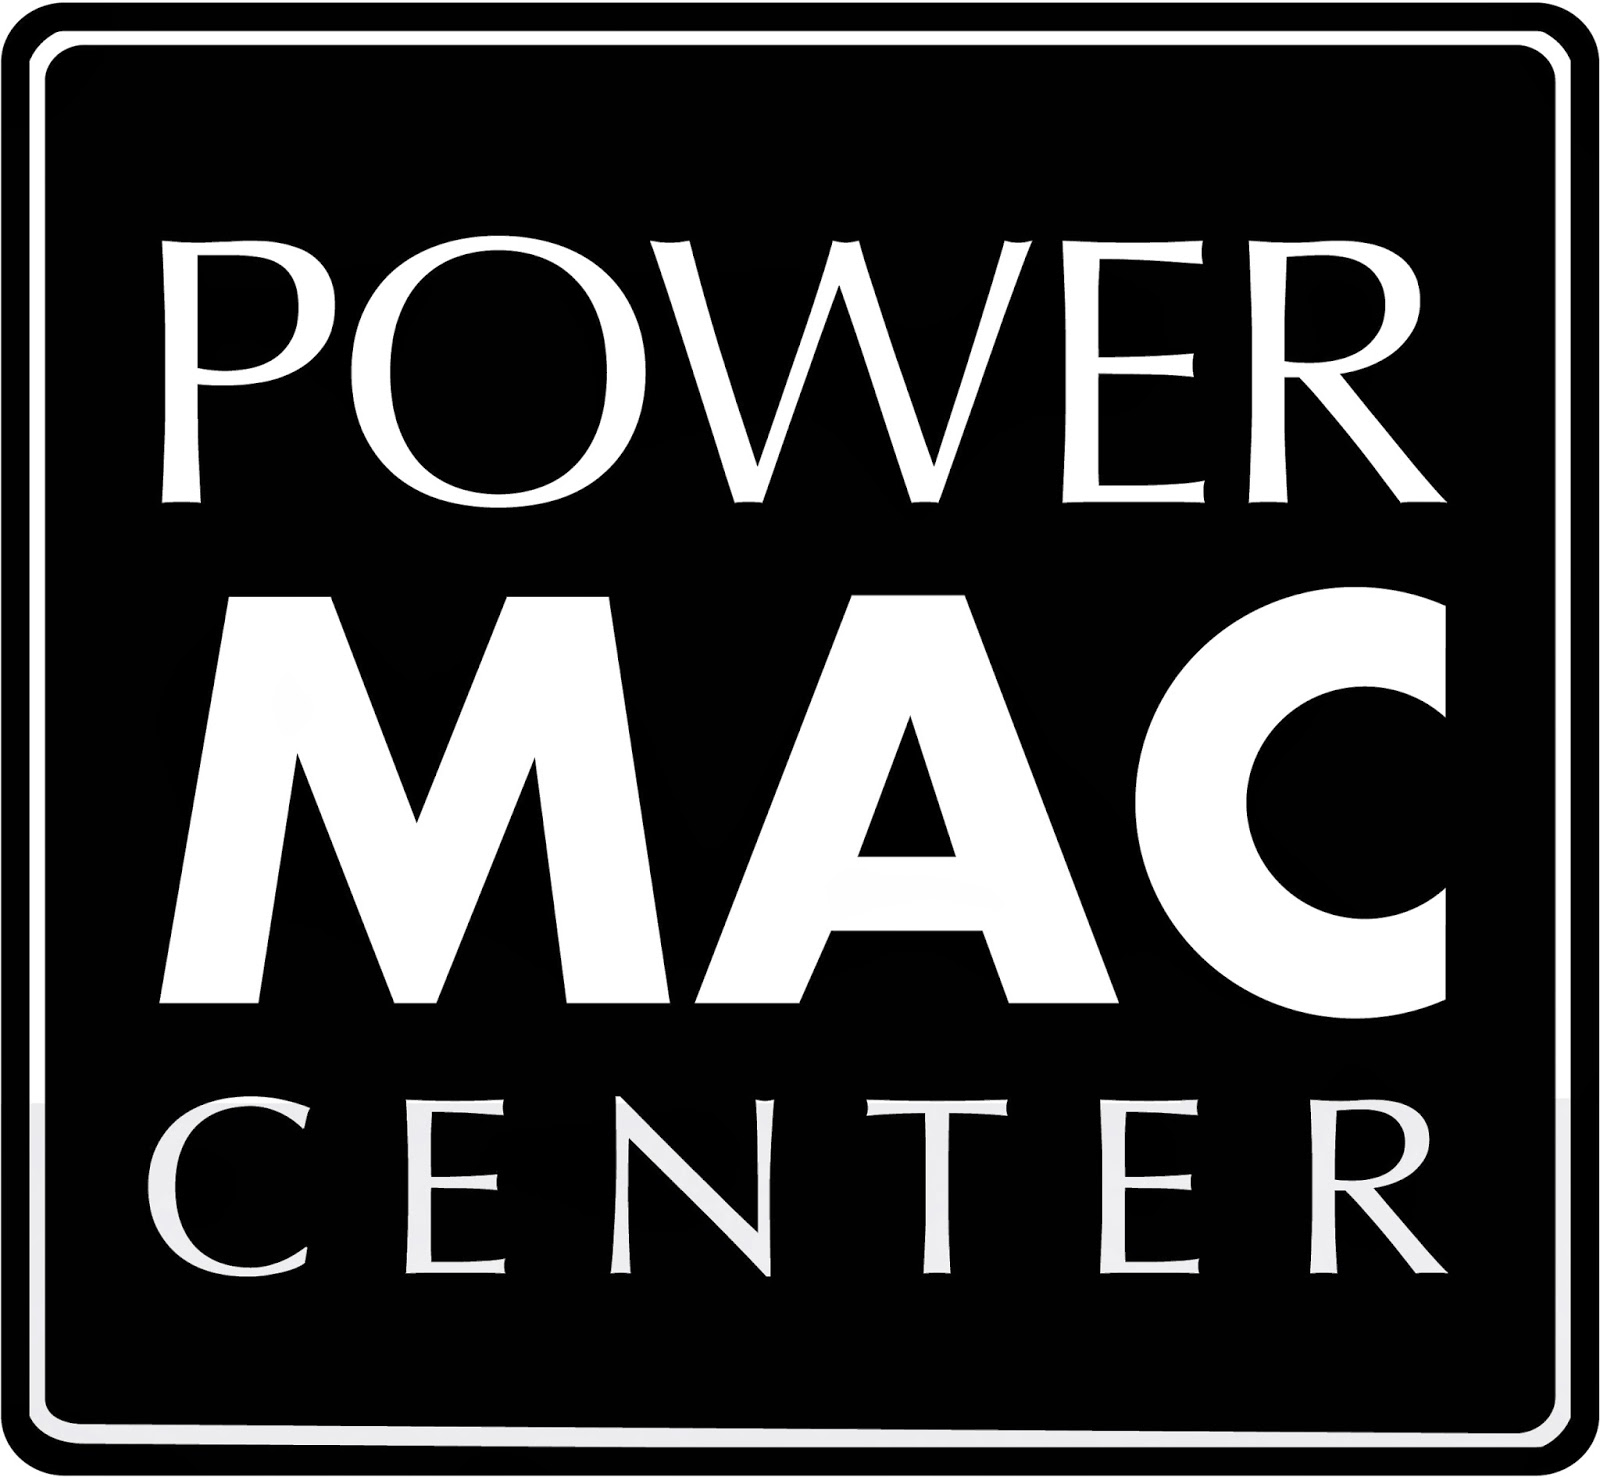 Power mac center opens 17th store in sm city bf paraaque wazzup power mac center opens 17th store in sm city bf paraaque malvernweather Gallery